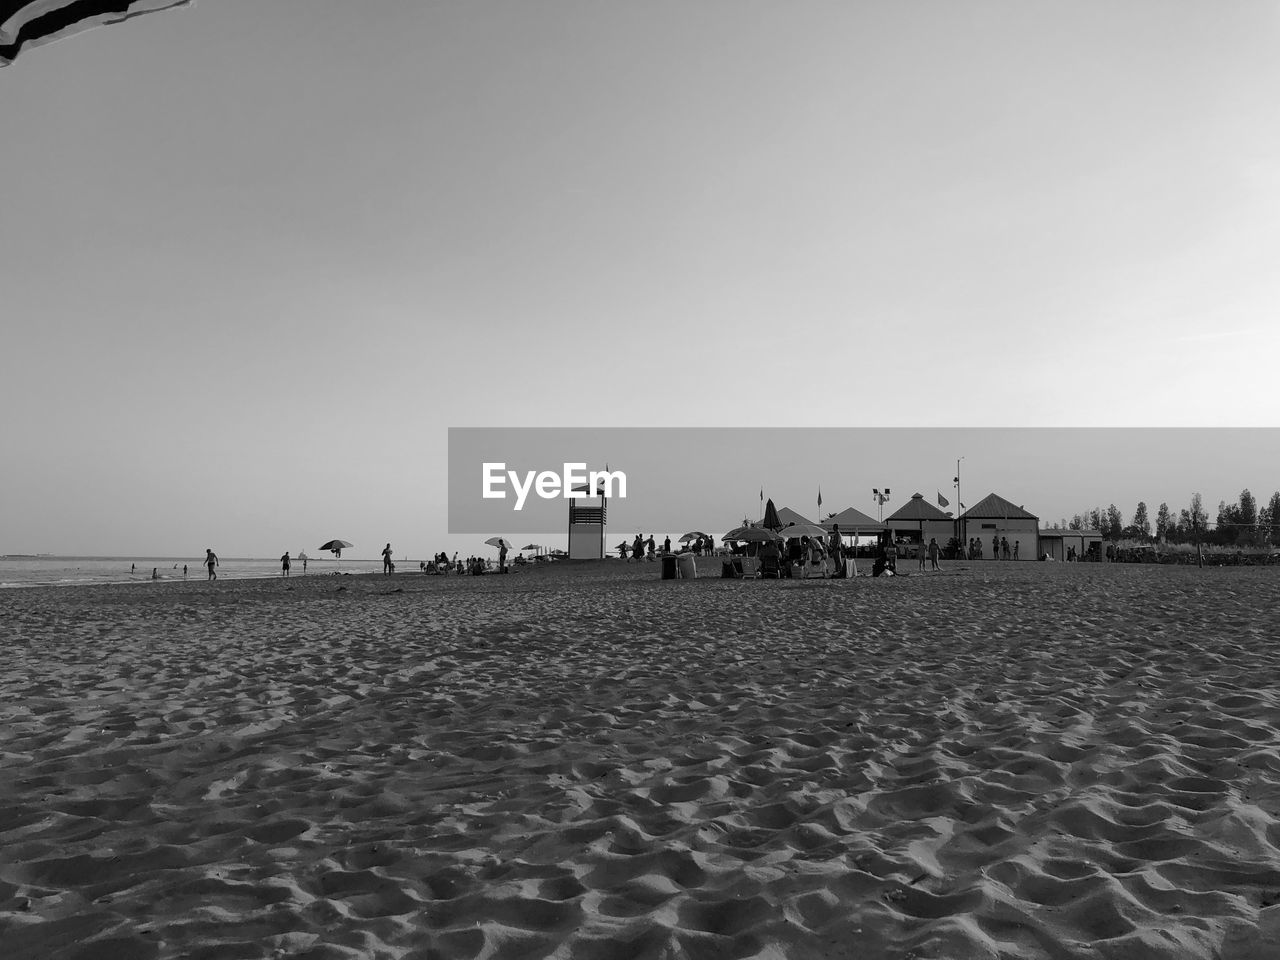 sky, beach, sand, land, built structure, nature, architecture, scenics - nature, building exterior, day, water, sea, tranquility, copy space, beauty in nature, tranquil scene, incidental people, building, outdoors